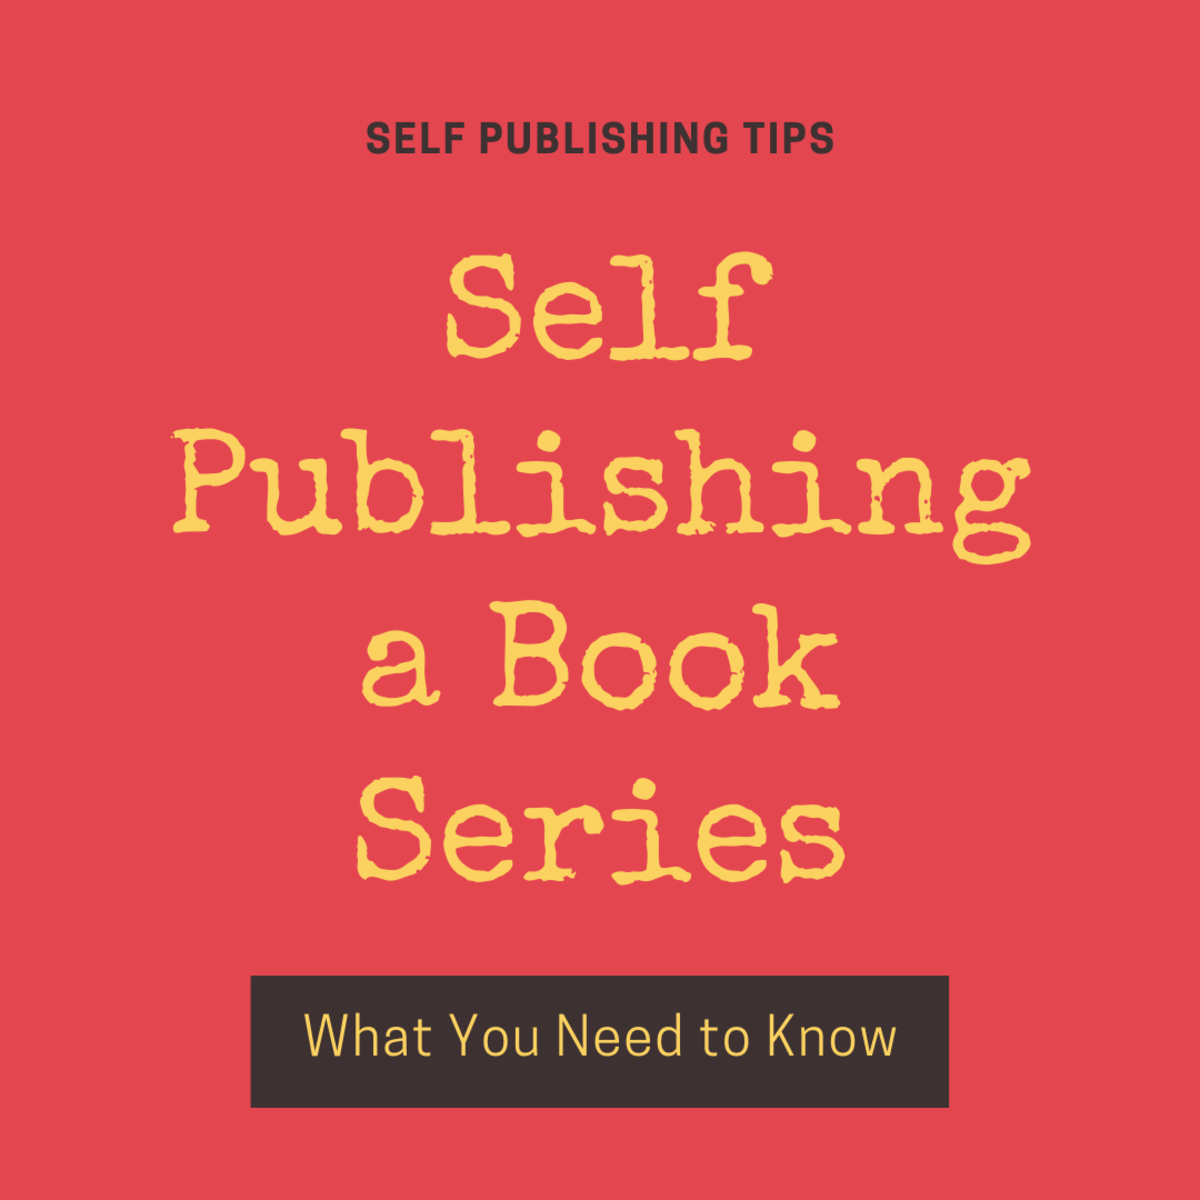 Self Publishing a Book Series: What You Need to Know